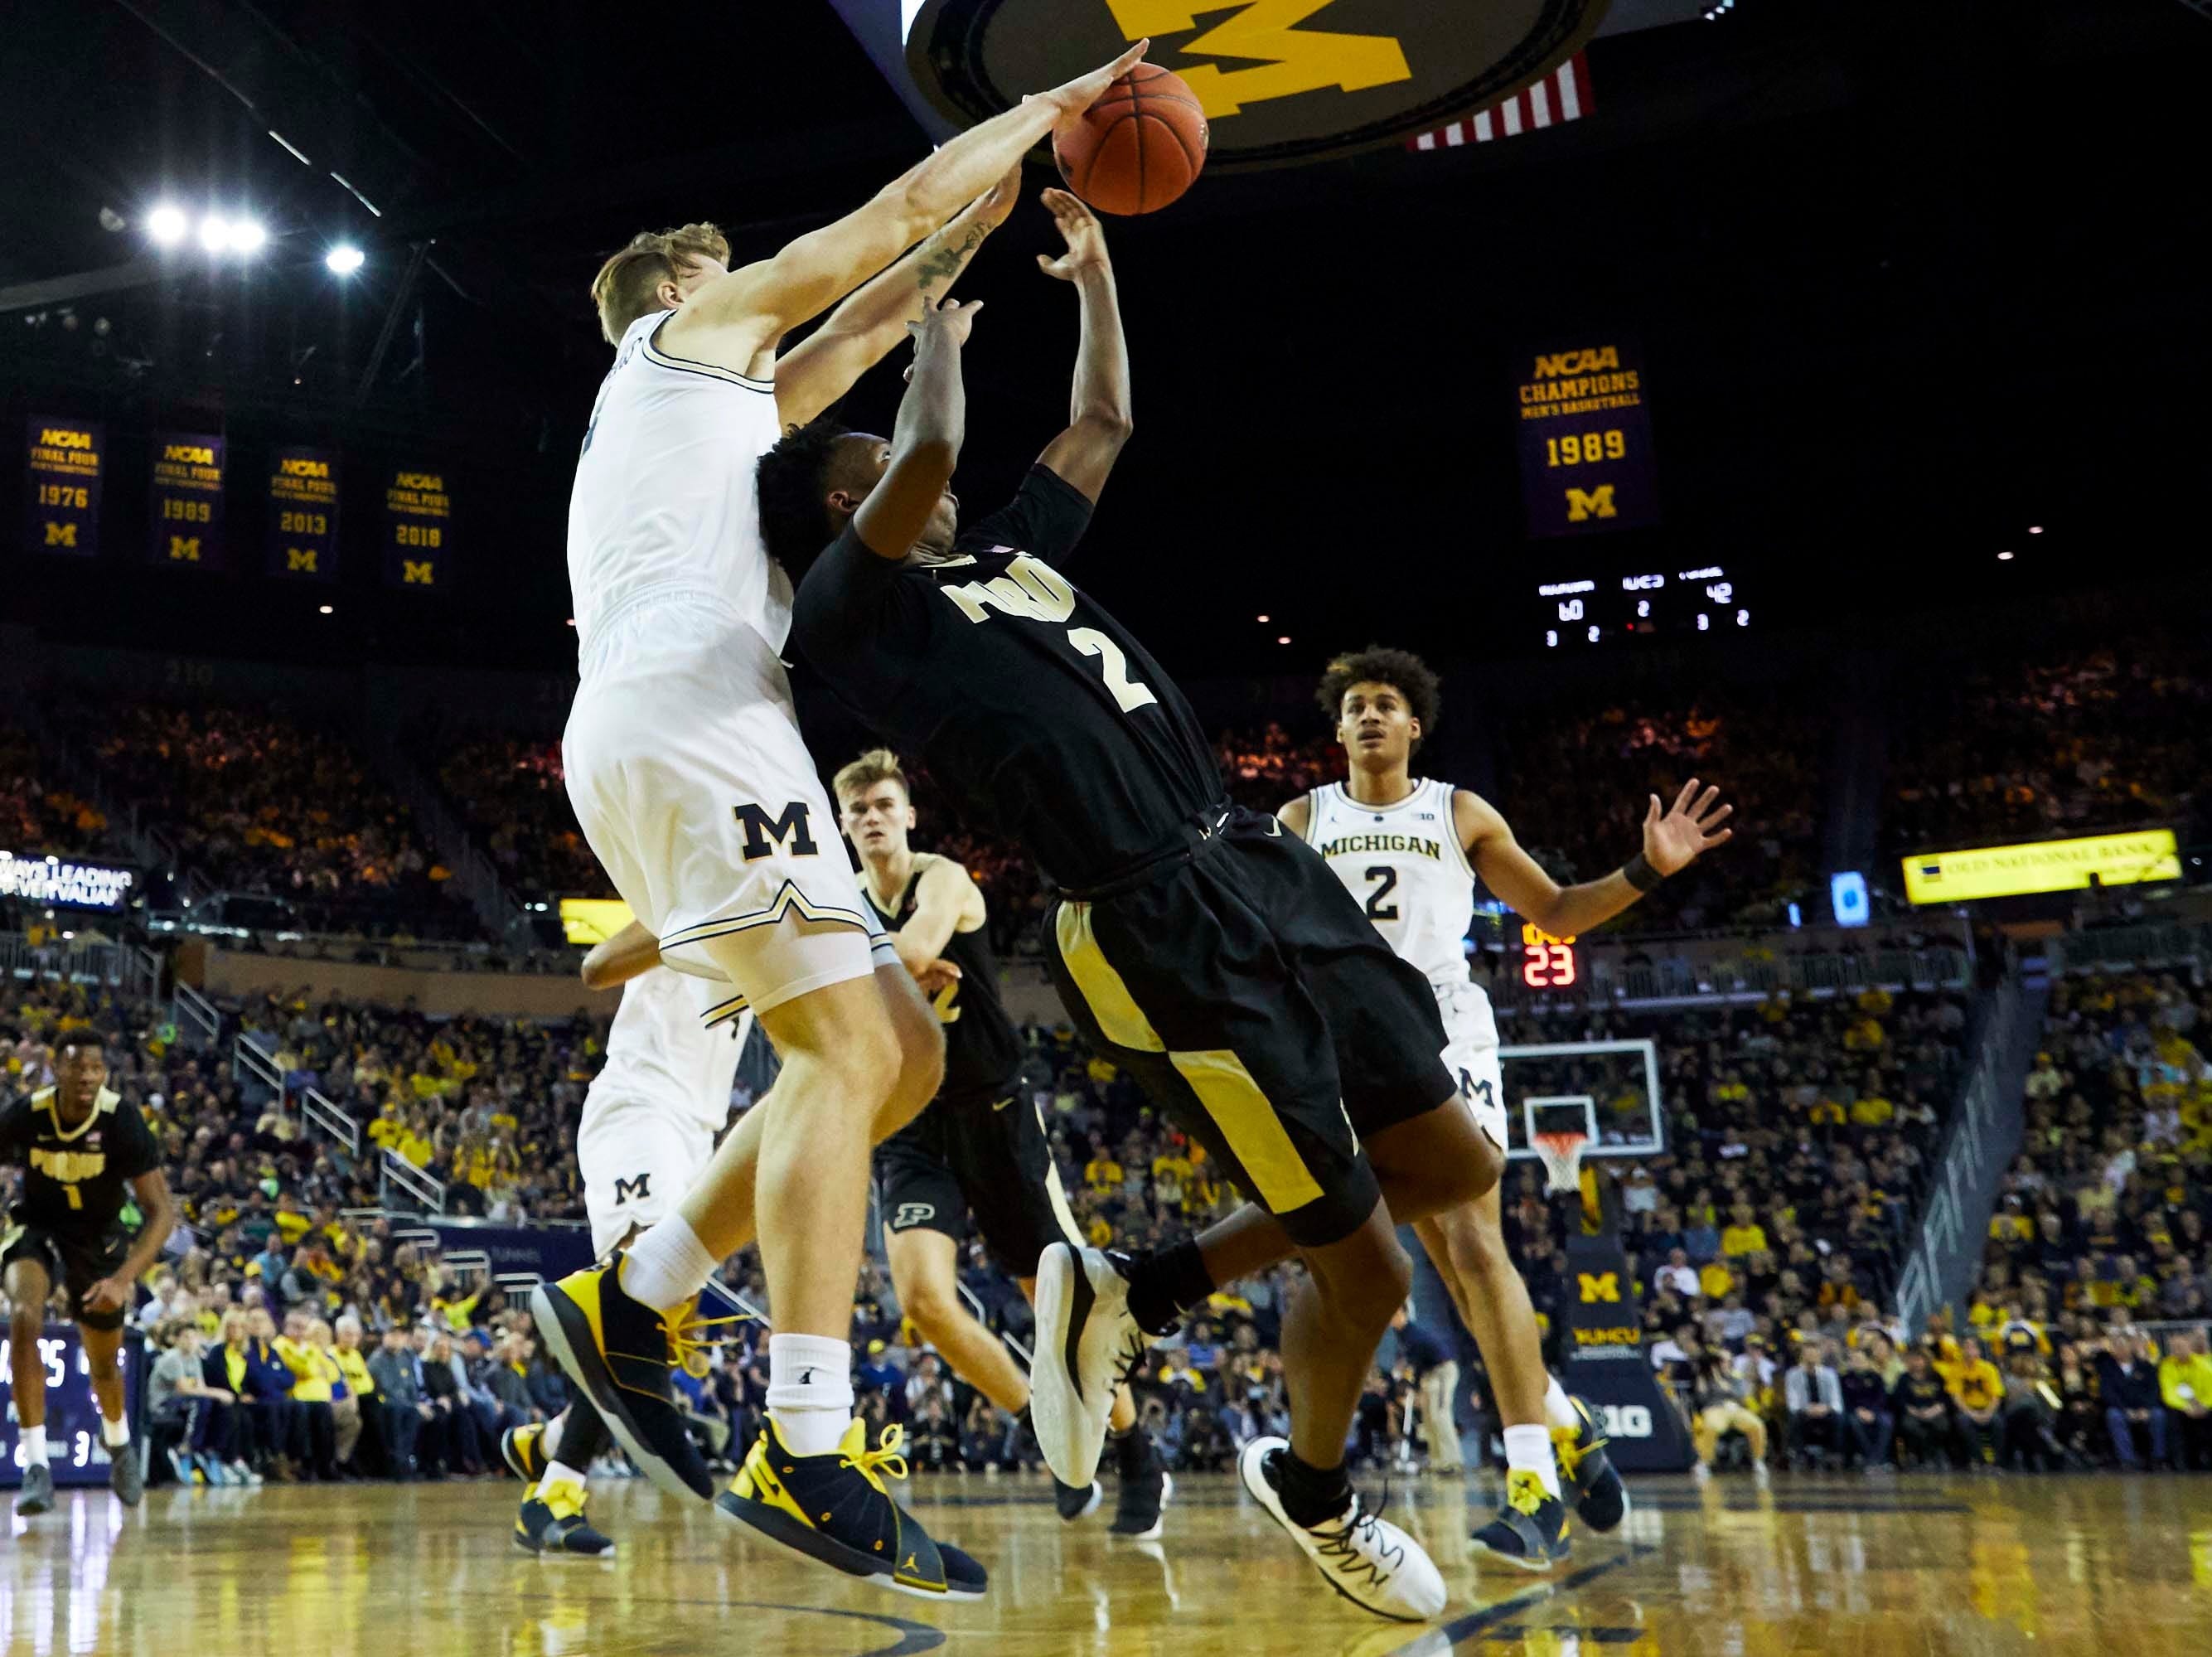 Dec 1, 2018; Ann Arbor, MI, USA; Michigan Wolverines forward Ignas Brazdeikis (13) blocks a shot by Purdue Boilermakers guard Eric Hunter Jr. (2) in the second half at Crisler Center. Mandatory Credit: Rick Osentoski-USA TODAY Sports